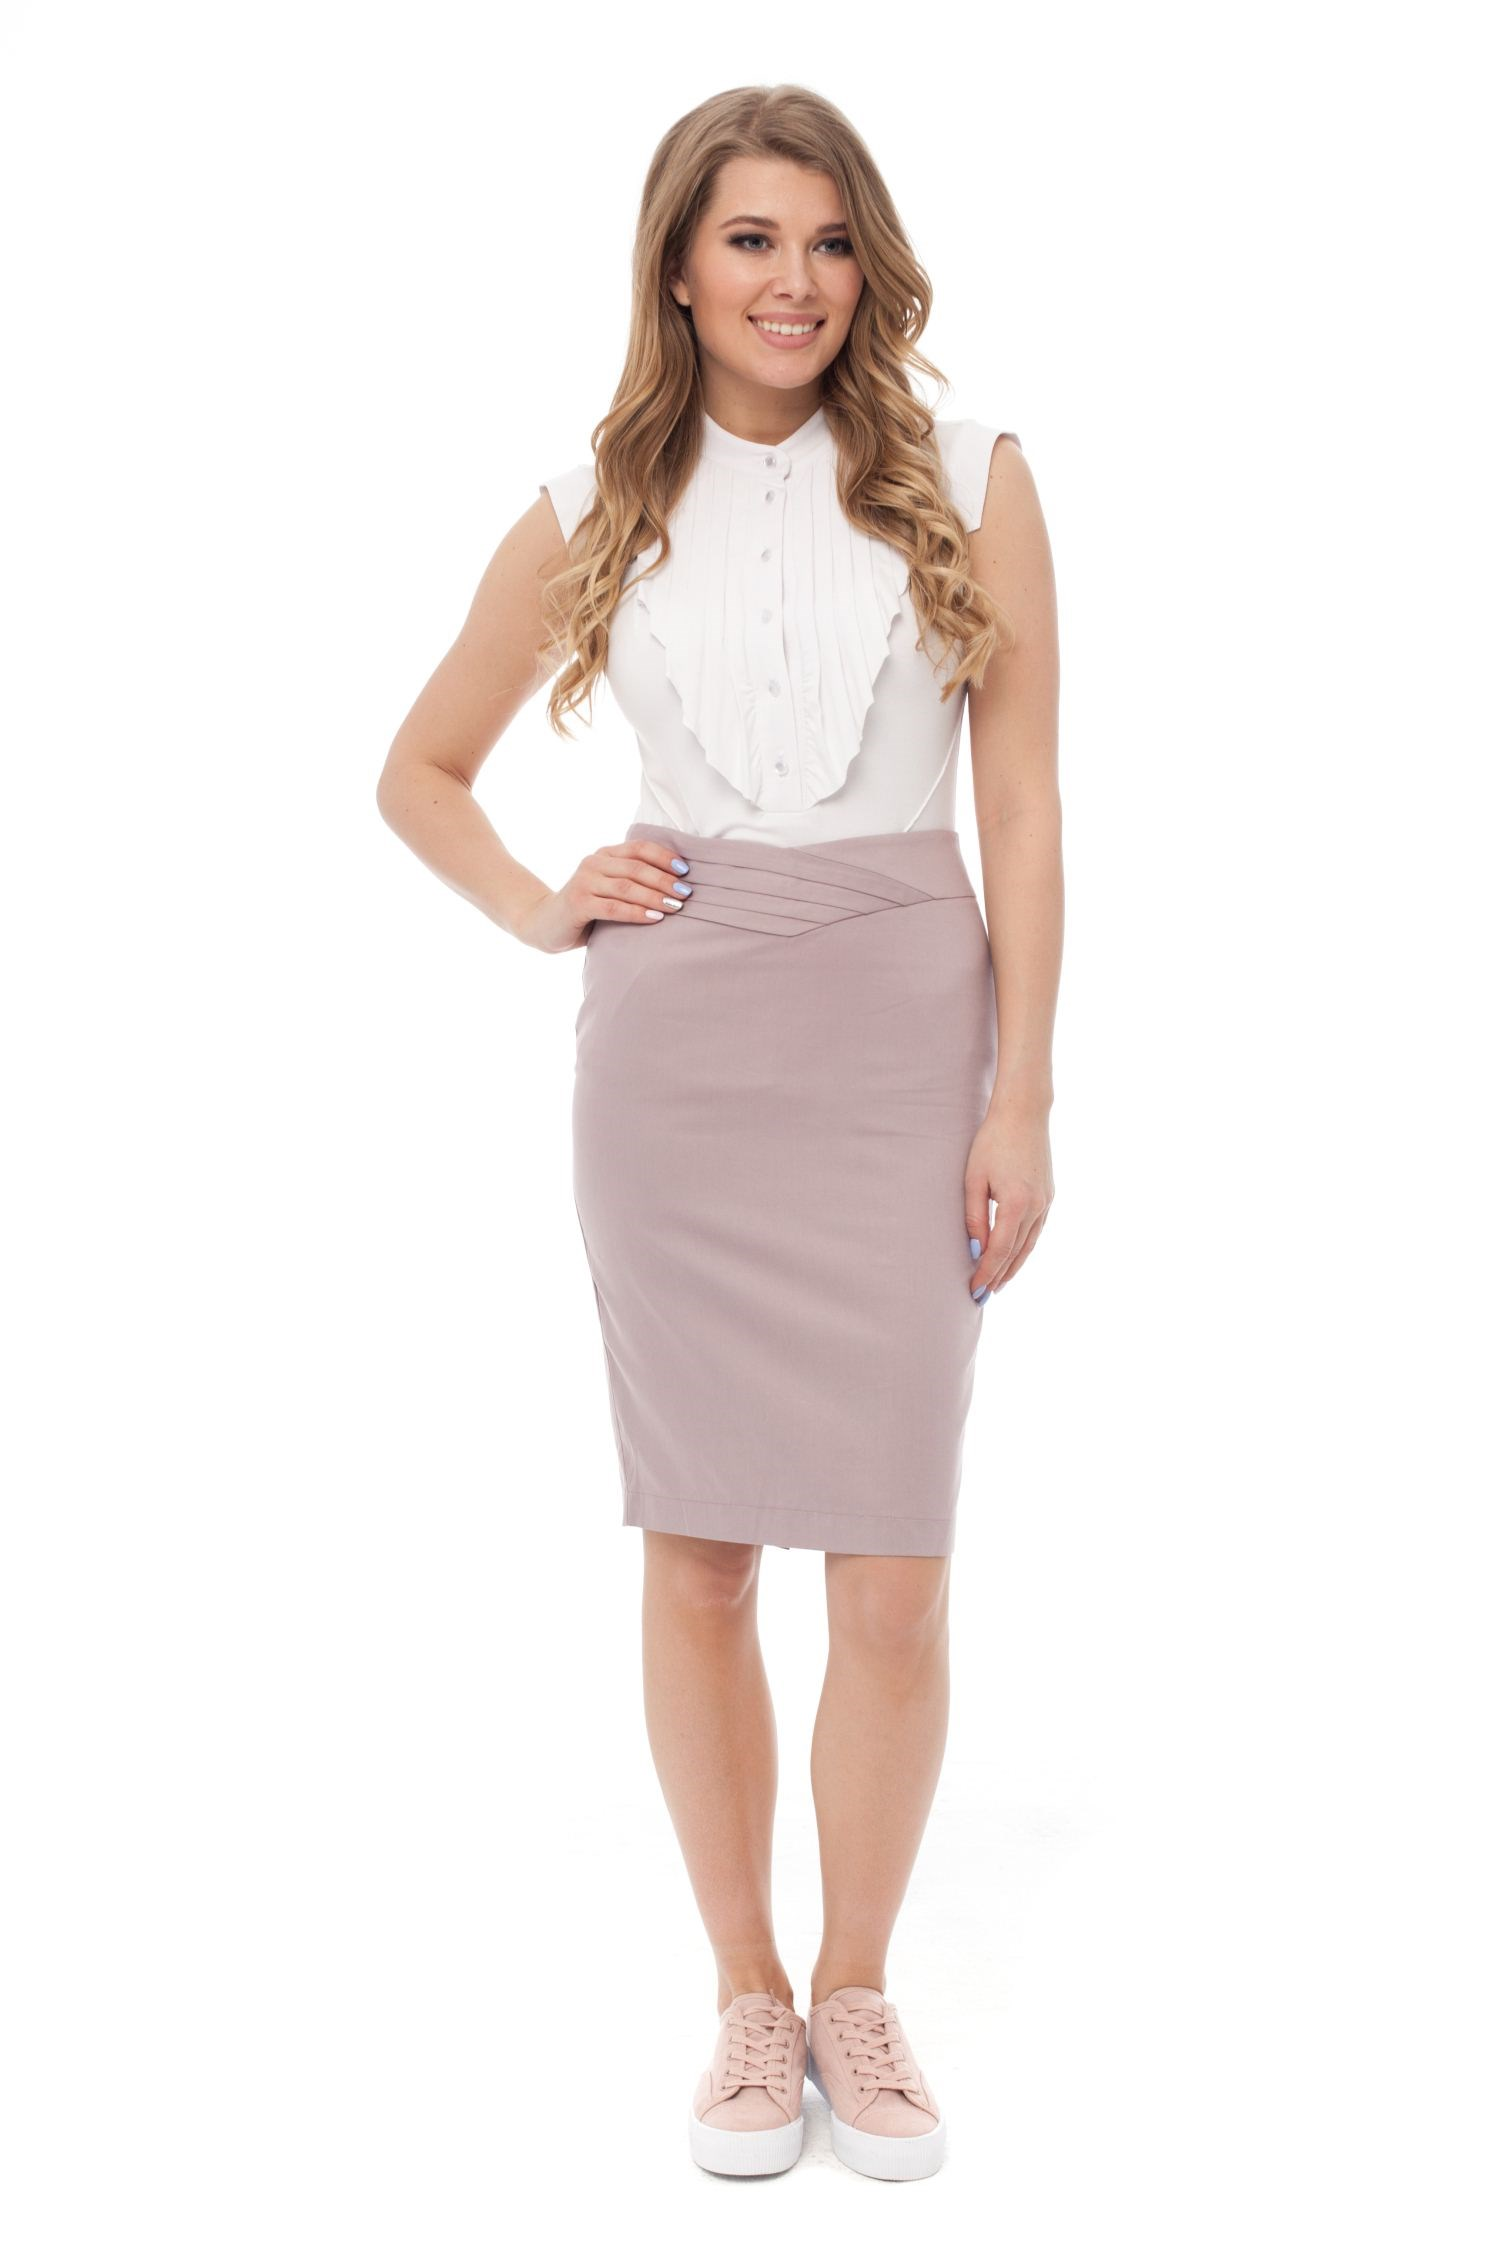 Canvas pencil skirt with decorative V belt. tie waist plaid pencil skirt